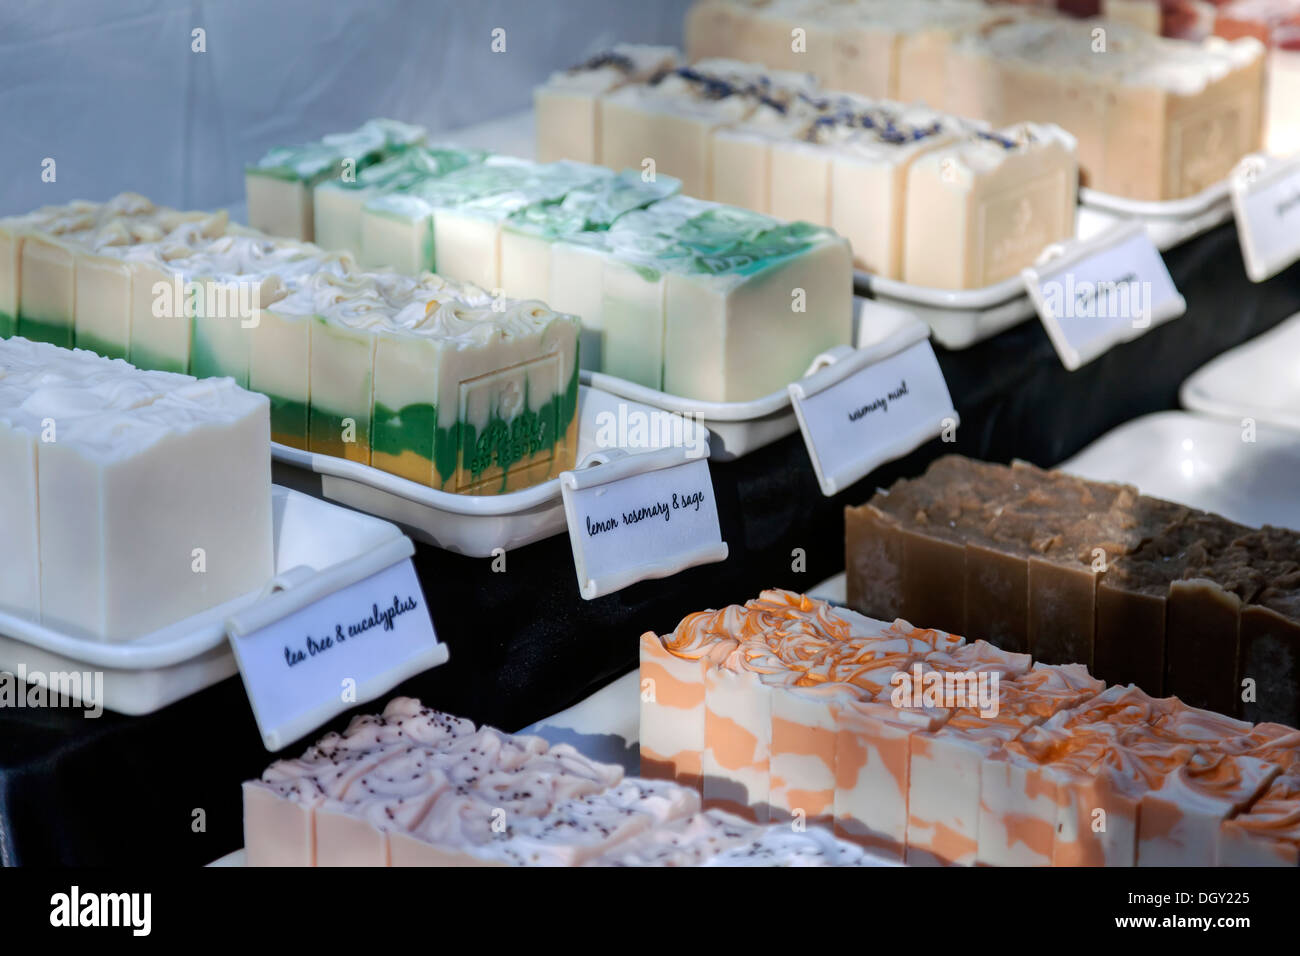 Artisan hand made bath and body soaps on sale at the Mount Dora Arts and Crafts Fair. - Stock Image